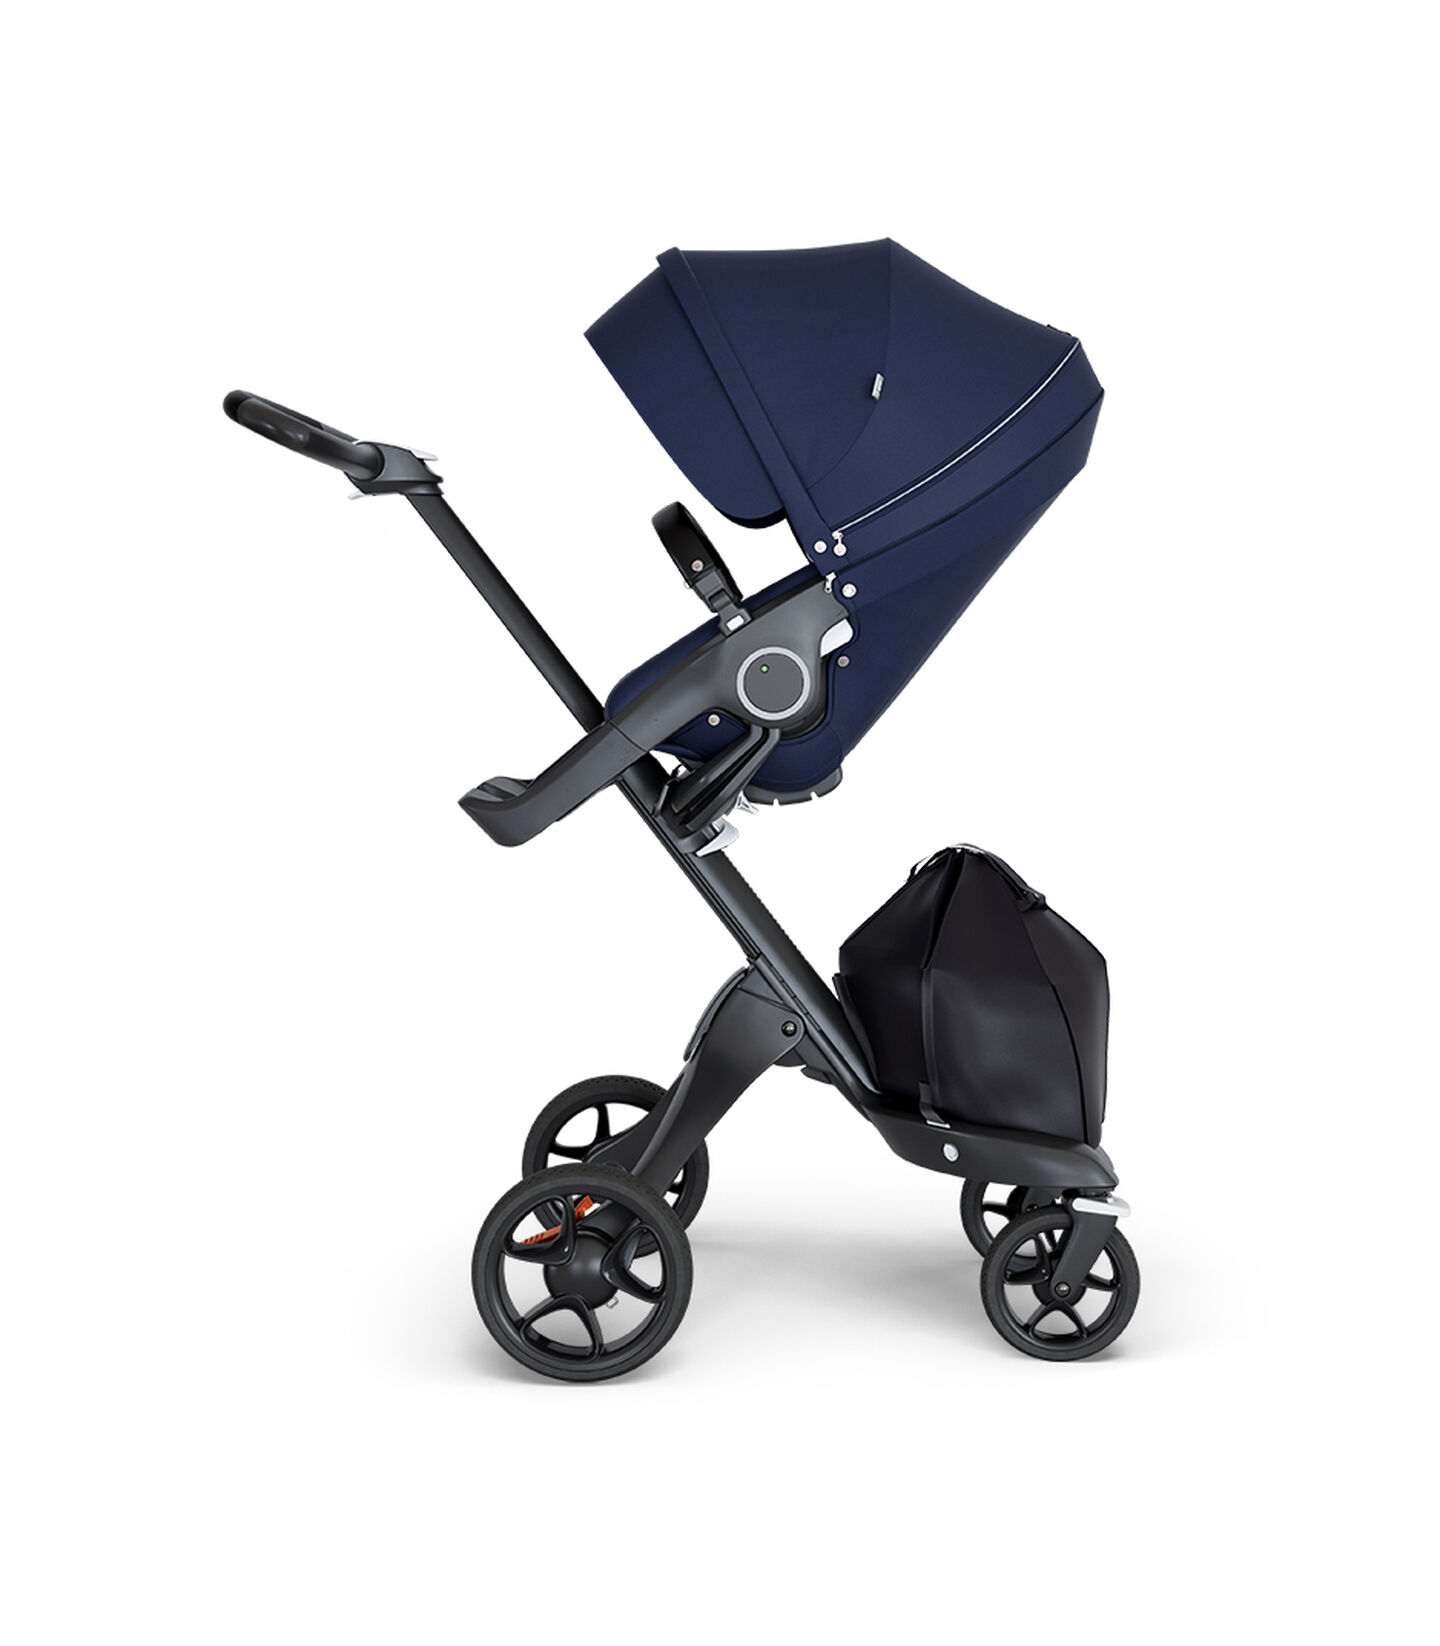 Stokke® Xplory® wtih Black Chassis and Leatherette Black handle. Stokke® Stroller Seat Deep Blue.